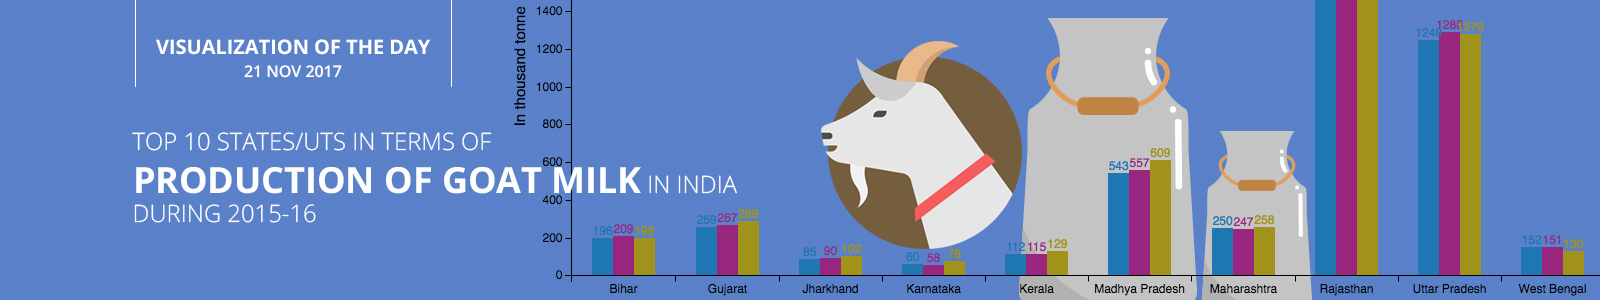 Top 10 Statesuts In Terms Of Production Of Goat Milk In India